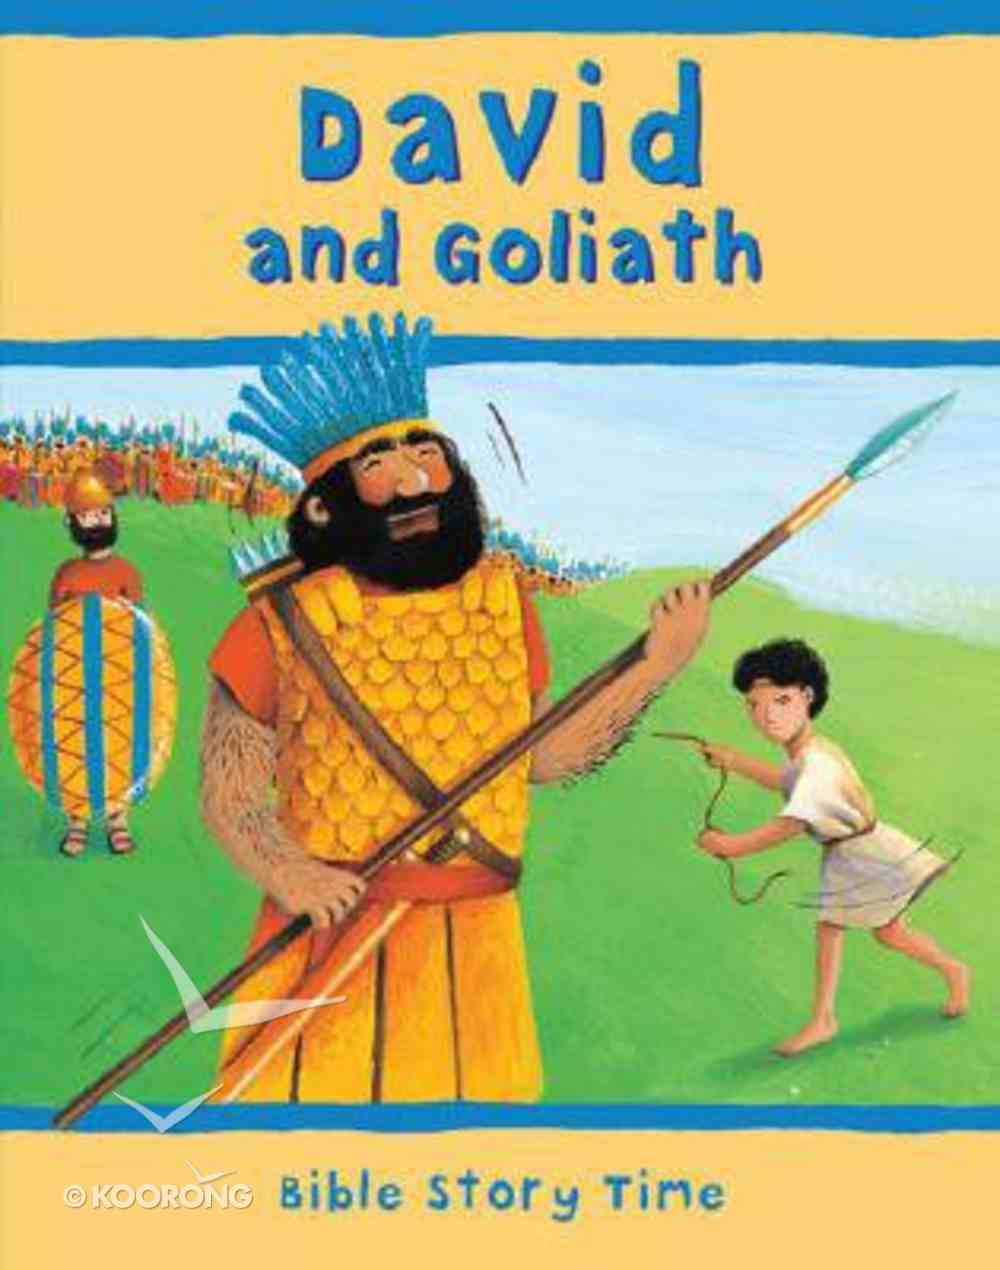 David and Goliath (Bible Story Time Old Testament Series) Hardback